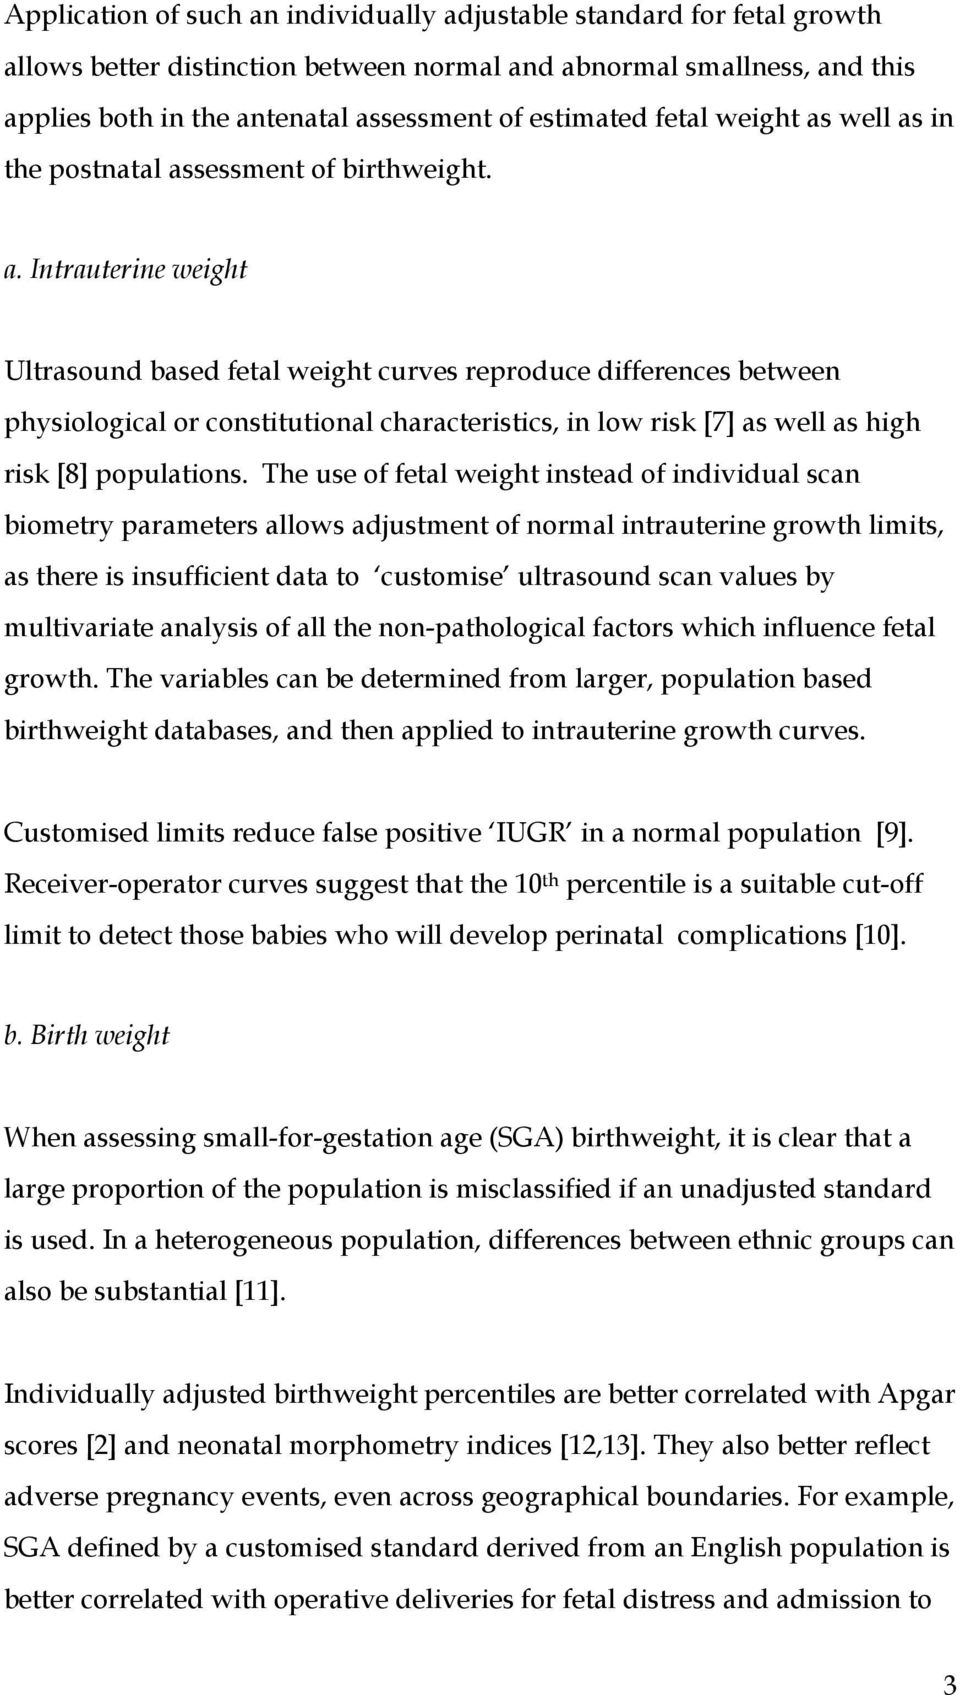 well as in the postnatal assessment of birthweight. a. Intrauterine weight Ultrasound based fetal weight curves reproduce differences between physiological or constitutional characteristics, in low risk [7] as well as high risk [8] populations.